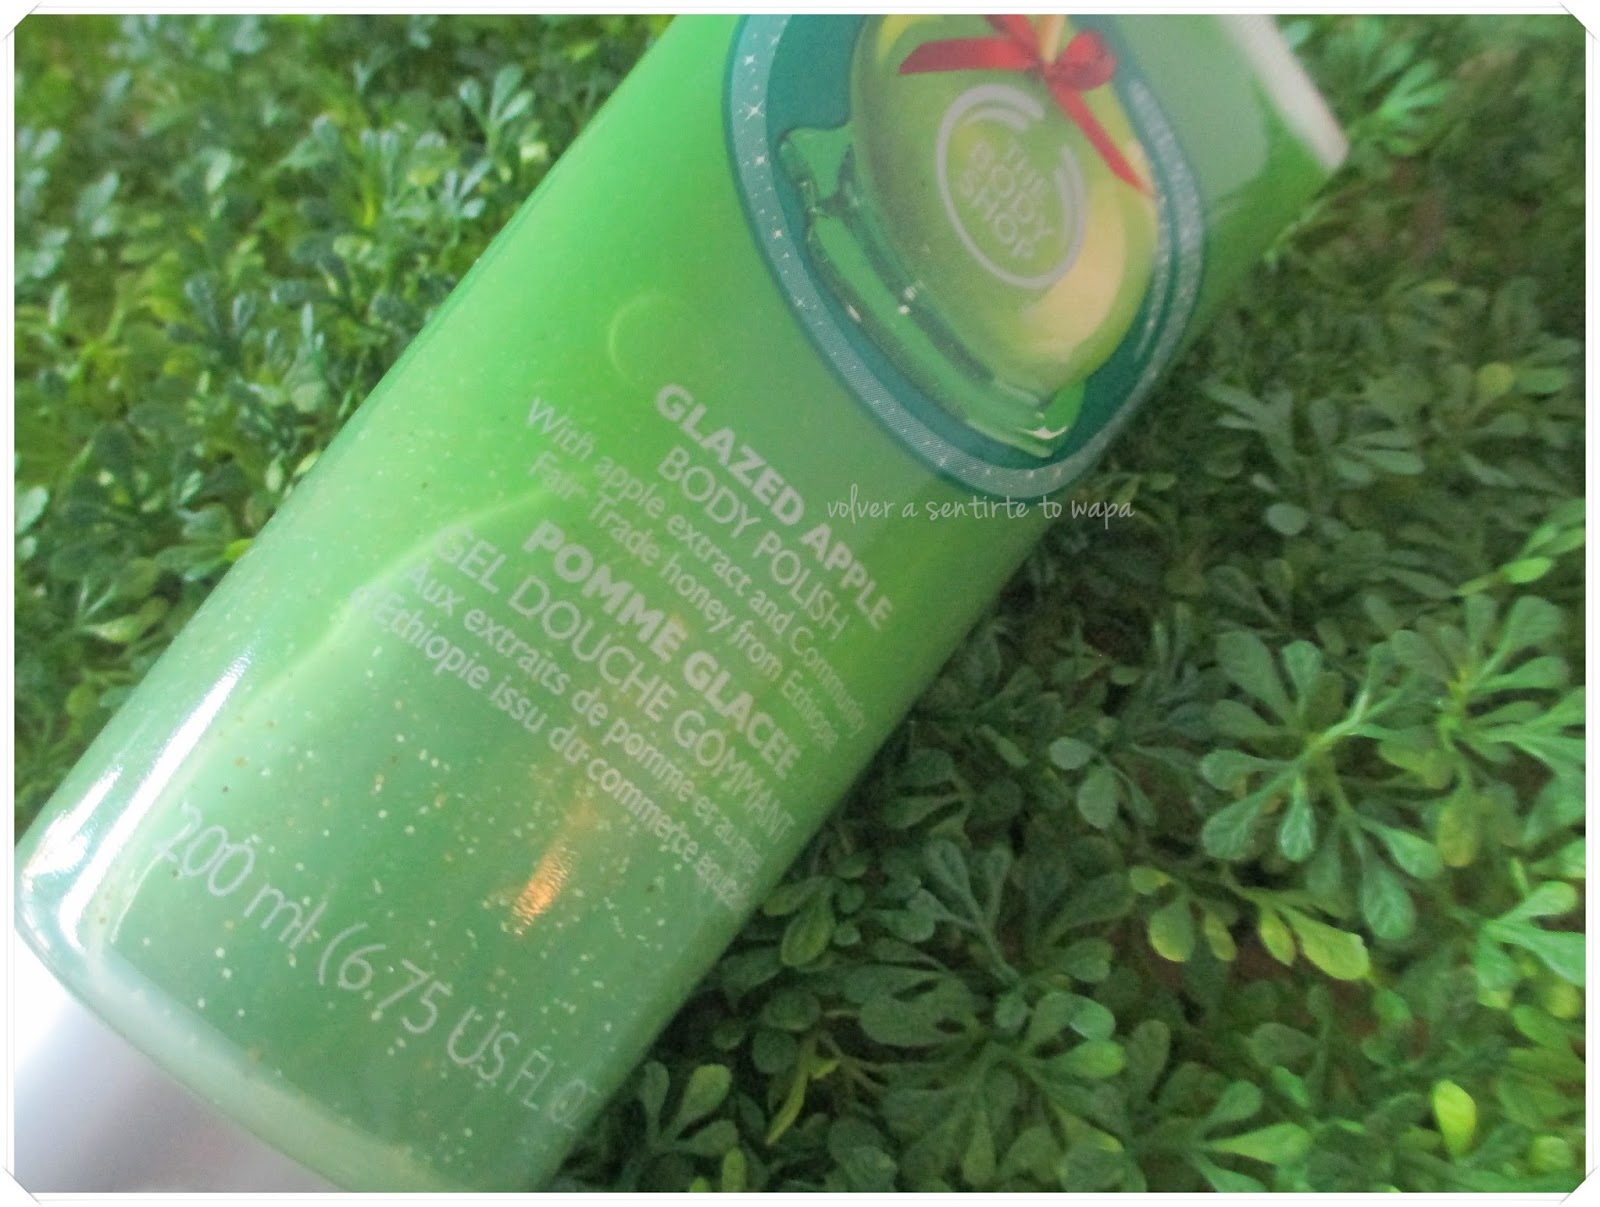 Manzana Glaseada de The Body Shop - Exfoliante Corporal {Navidad}